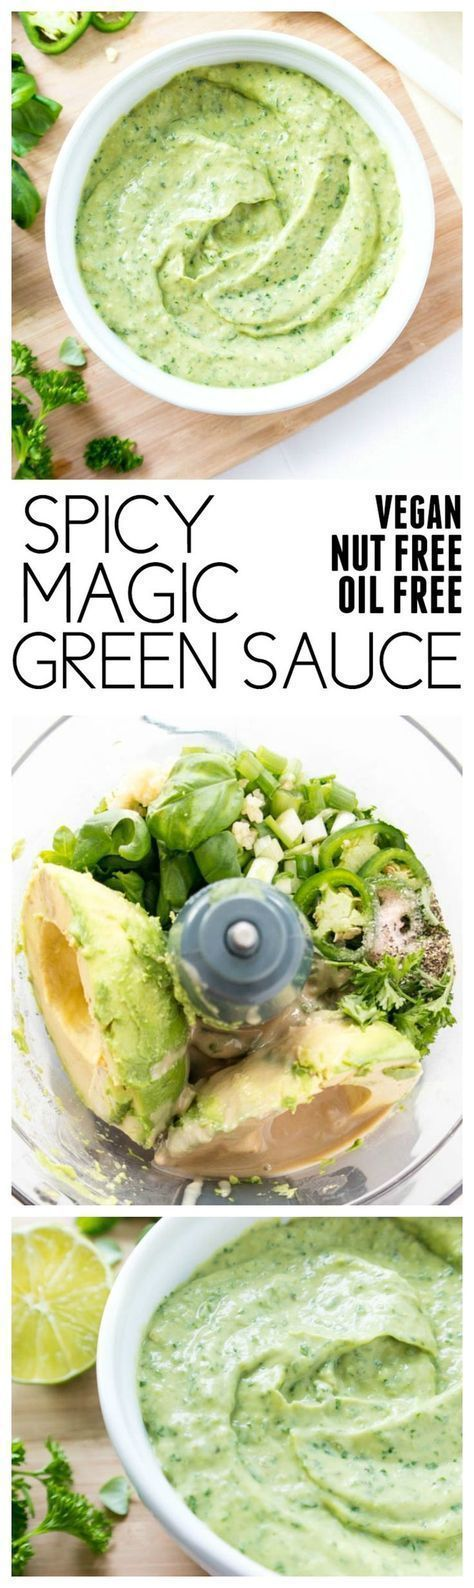 the most addicting sauce that you'll want to put on EVERYTHING! Spicy Magic Green Sauce. Vegan, Gluten Free, Oil Free, Nut Free. Complements all flavors, not just mexican flavors. Use as dipping sauce, sandwich spread, marinade, salad dressing, etc. #vega (taco pasta recipes gluten free)